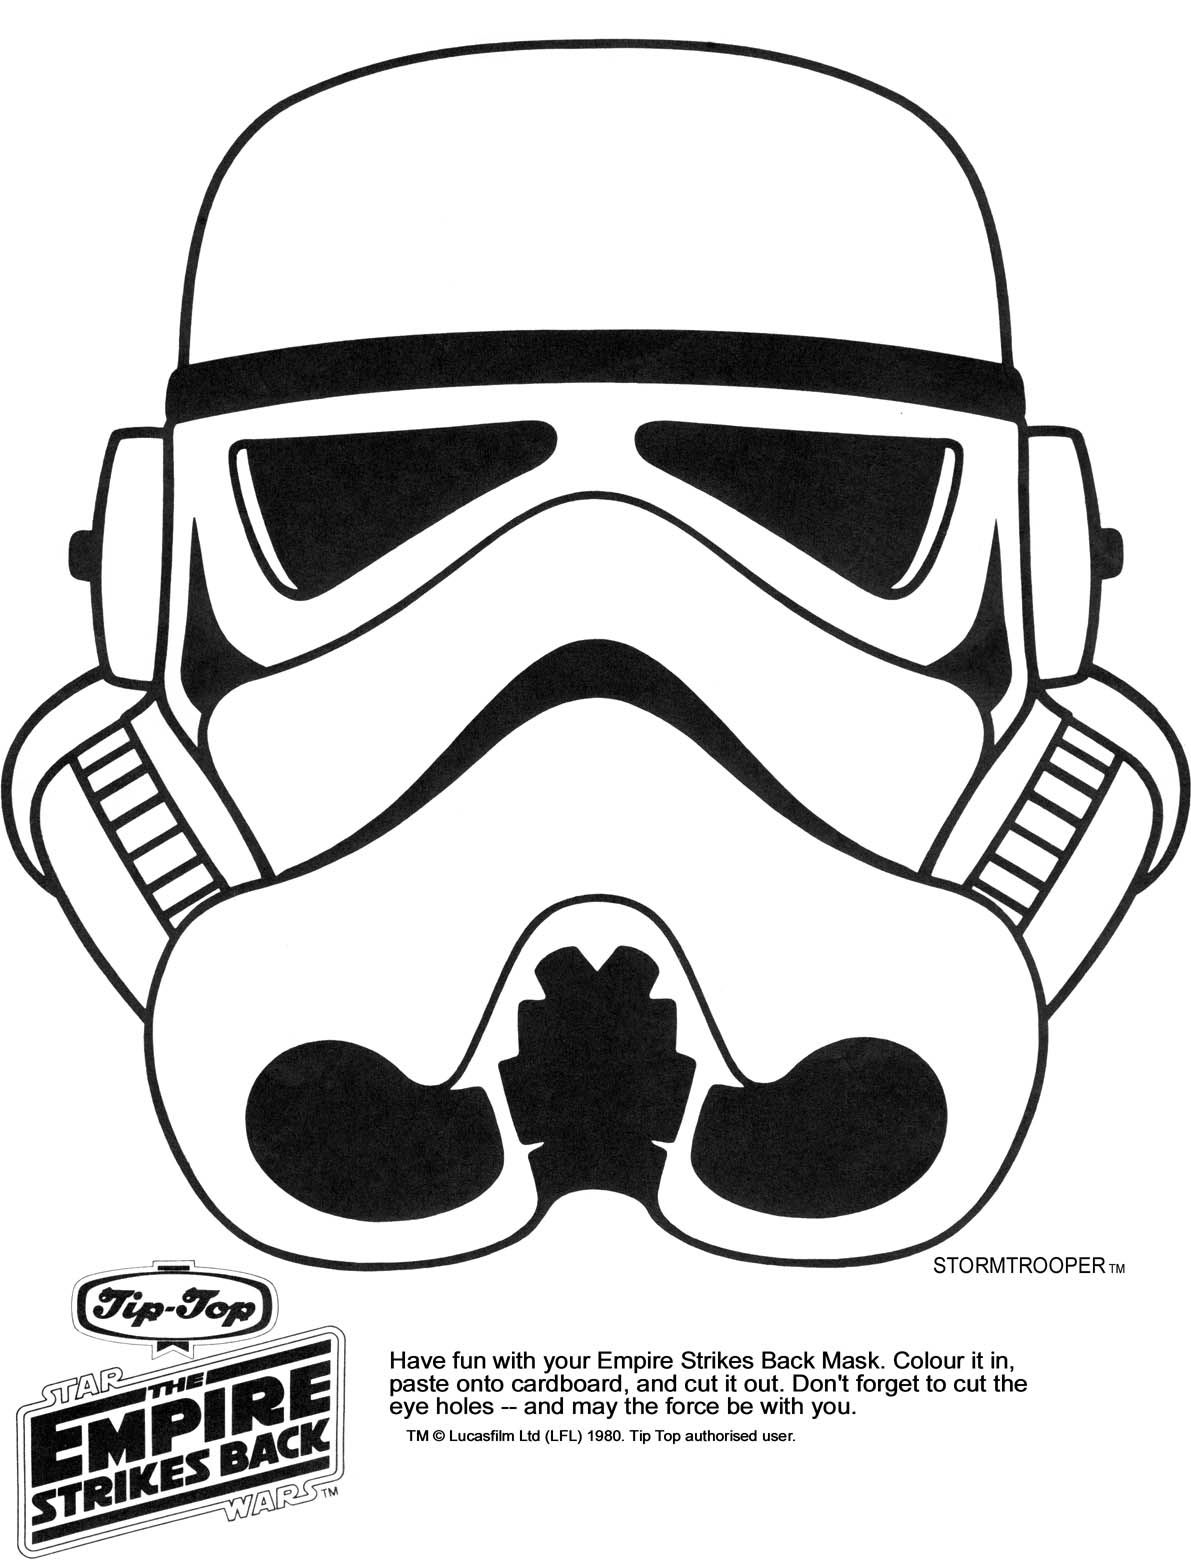 11 Pics of Star Wars Mask Coloring Pages - Stormtrooper Star Wars ...